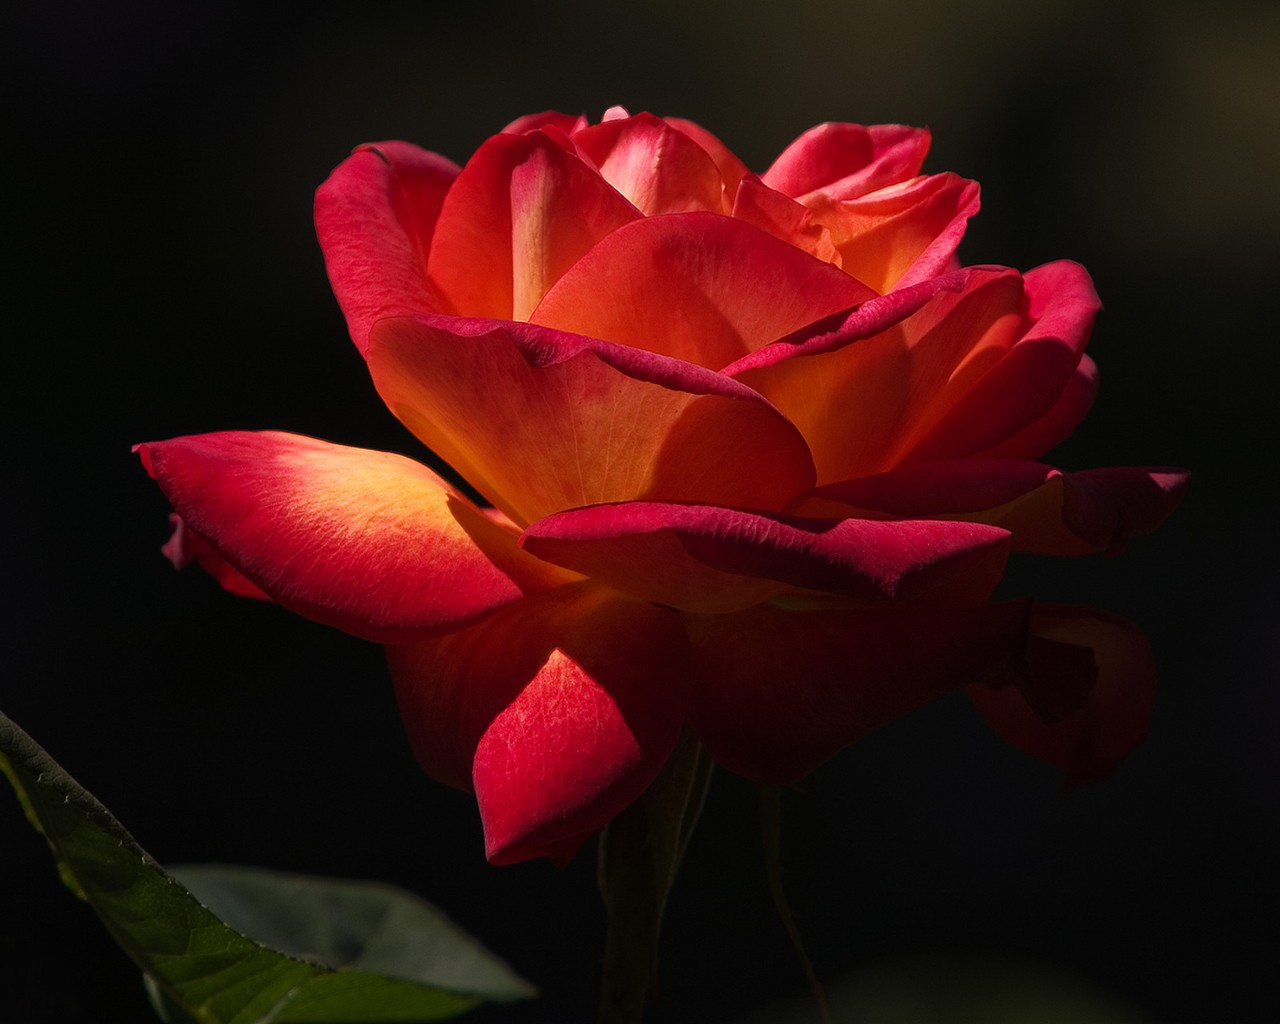 Red rose on a black background wallpapers and images   wallpapers 1280x1024